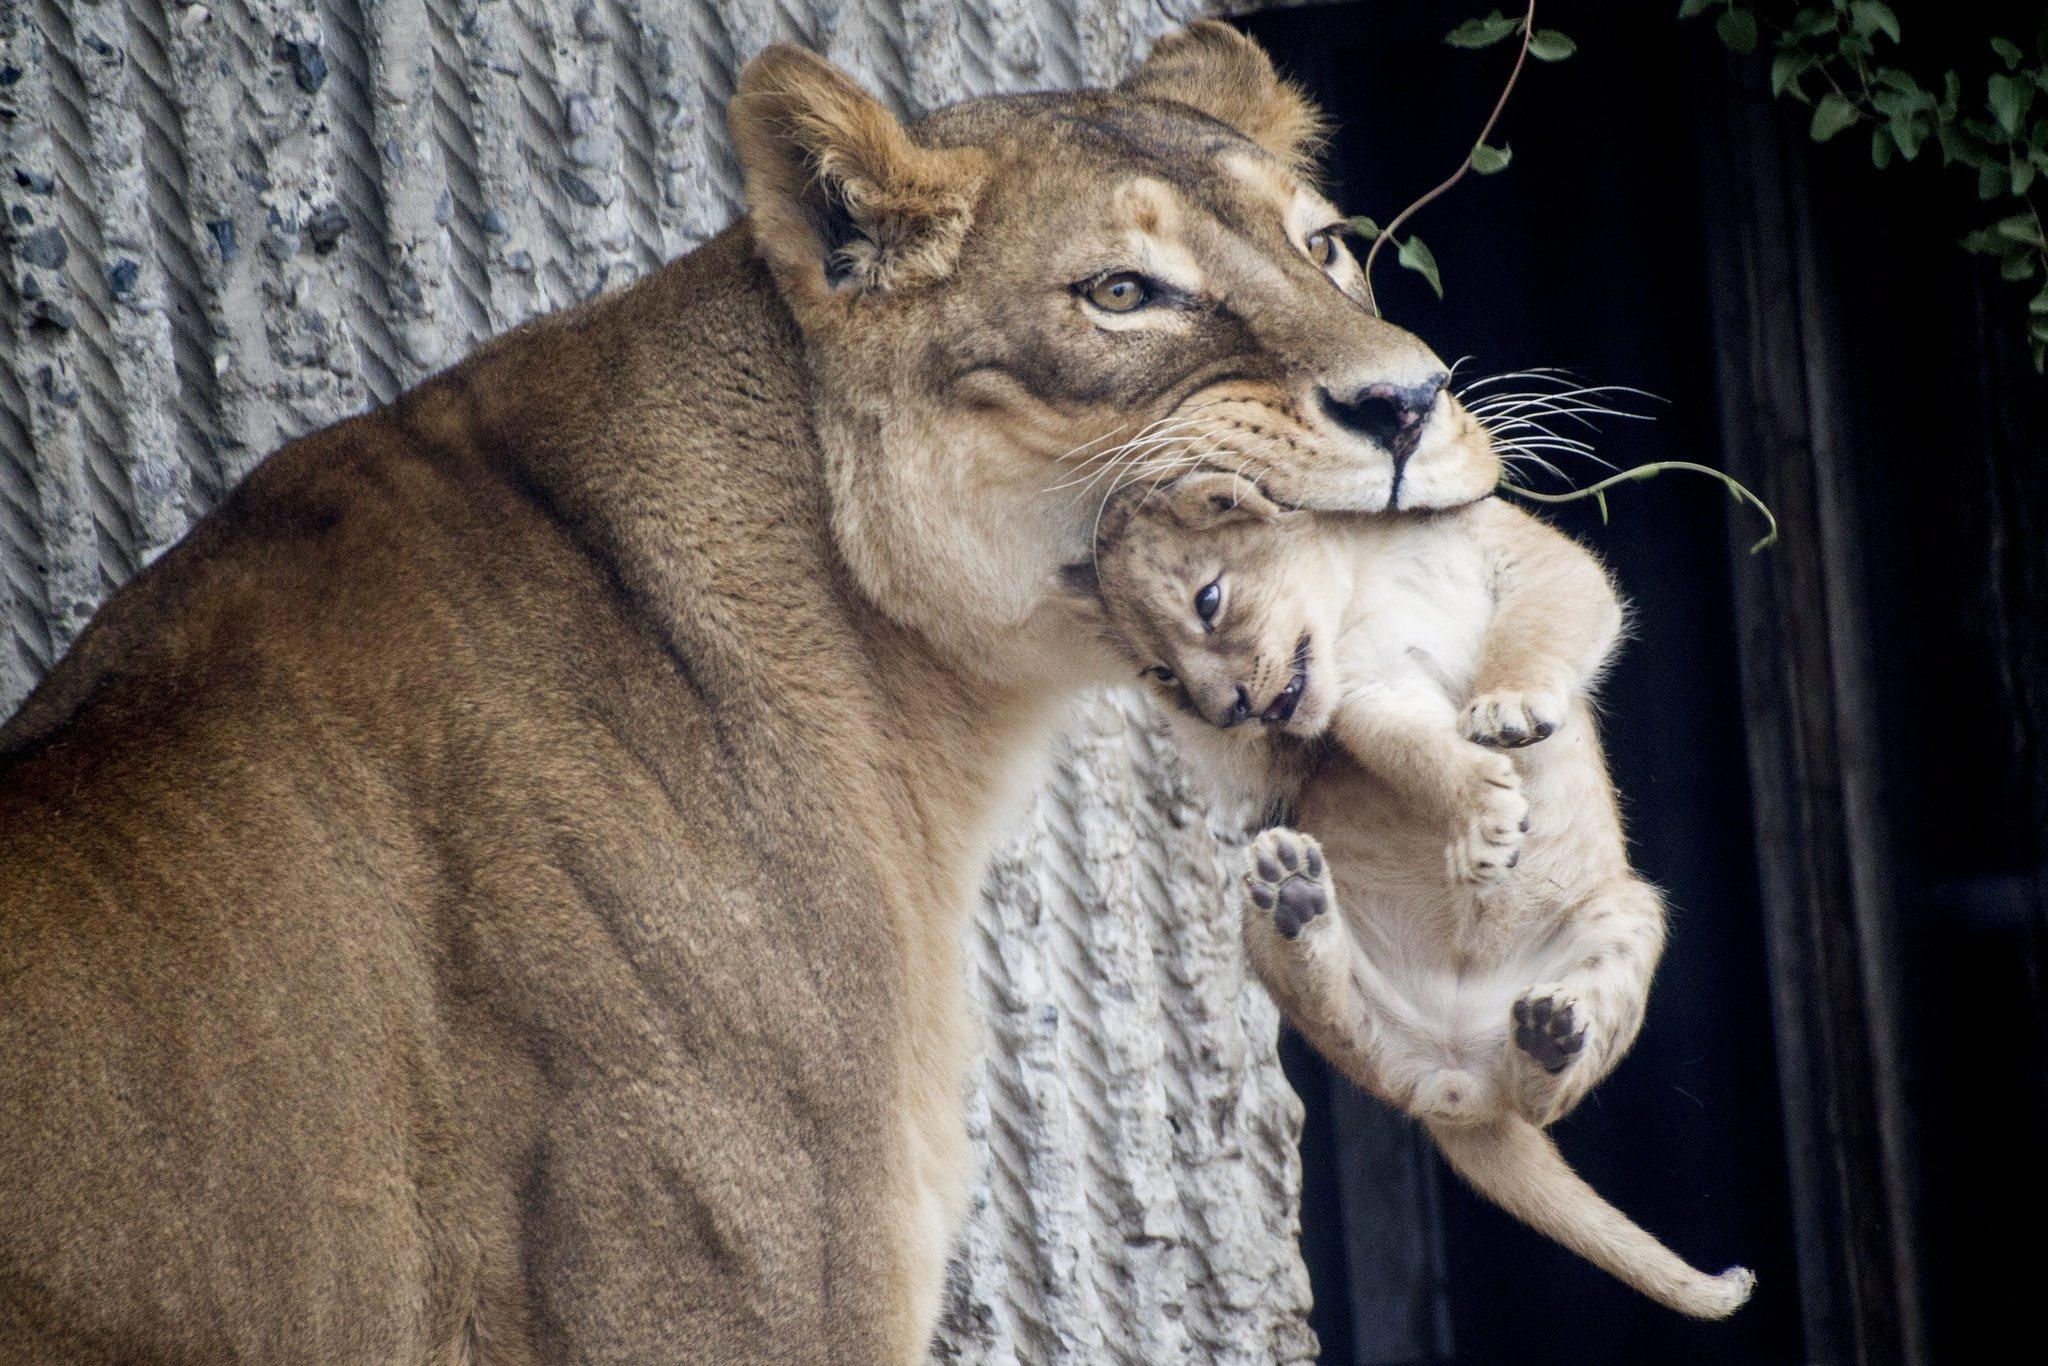 A file photo dated 17 July 2013 shows a lion and her cub entering the lions enclosure for the first time. Copenhagen Zoo is once again in the world news after it was reported on 25 March 2014, that the zoo put down four healthy lions. It sparked a world wide outrage when the zoo put down the giraffe Marius on 09 February 2014 and made a public autopsy. Marius was later fed to the lions.